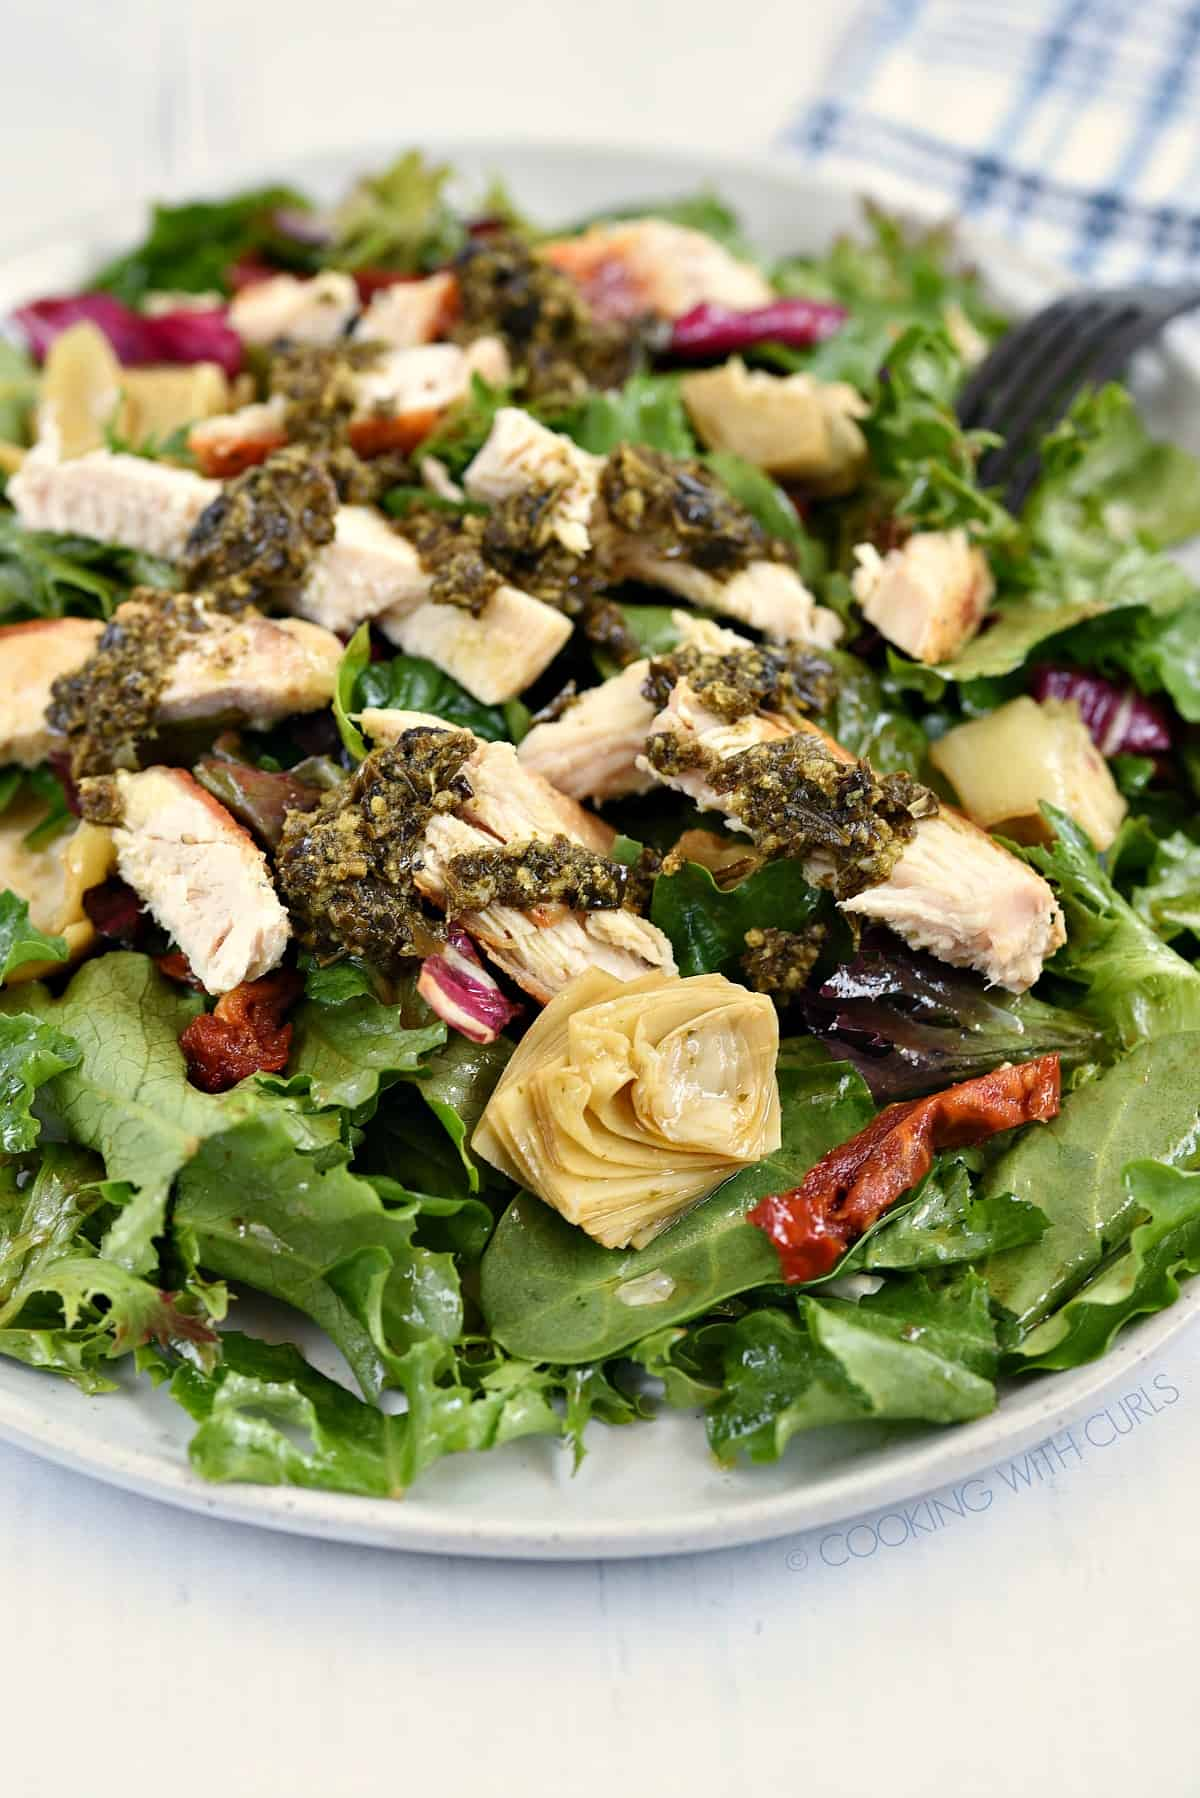 A close-up view of Pesto Chicken Salad on a large white plate.